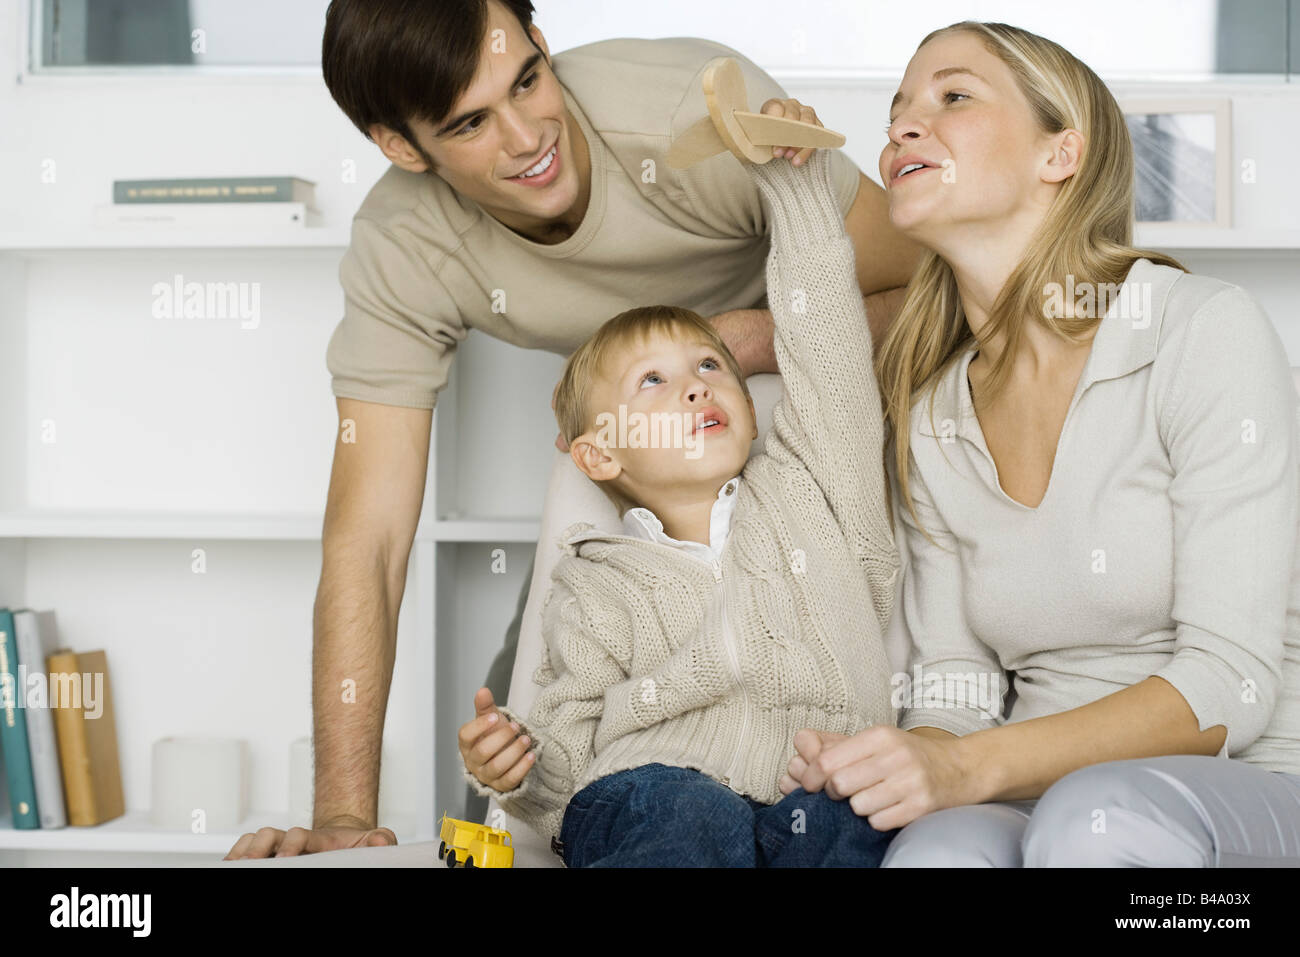 Little boy playing with toy airplane, parents watching - Stock Image